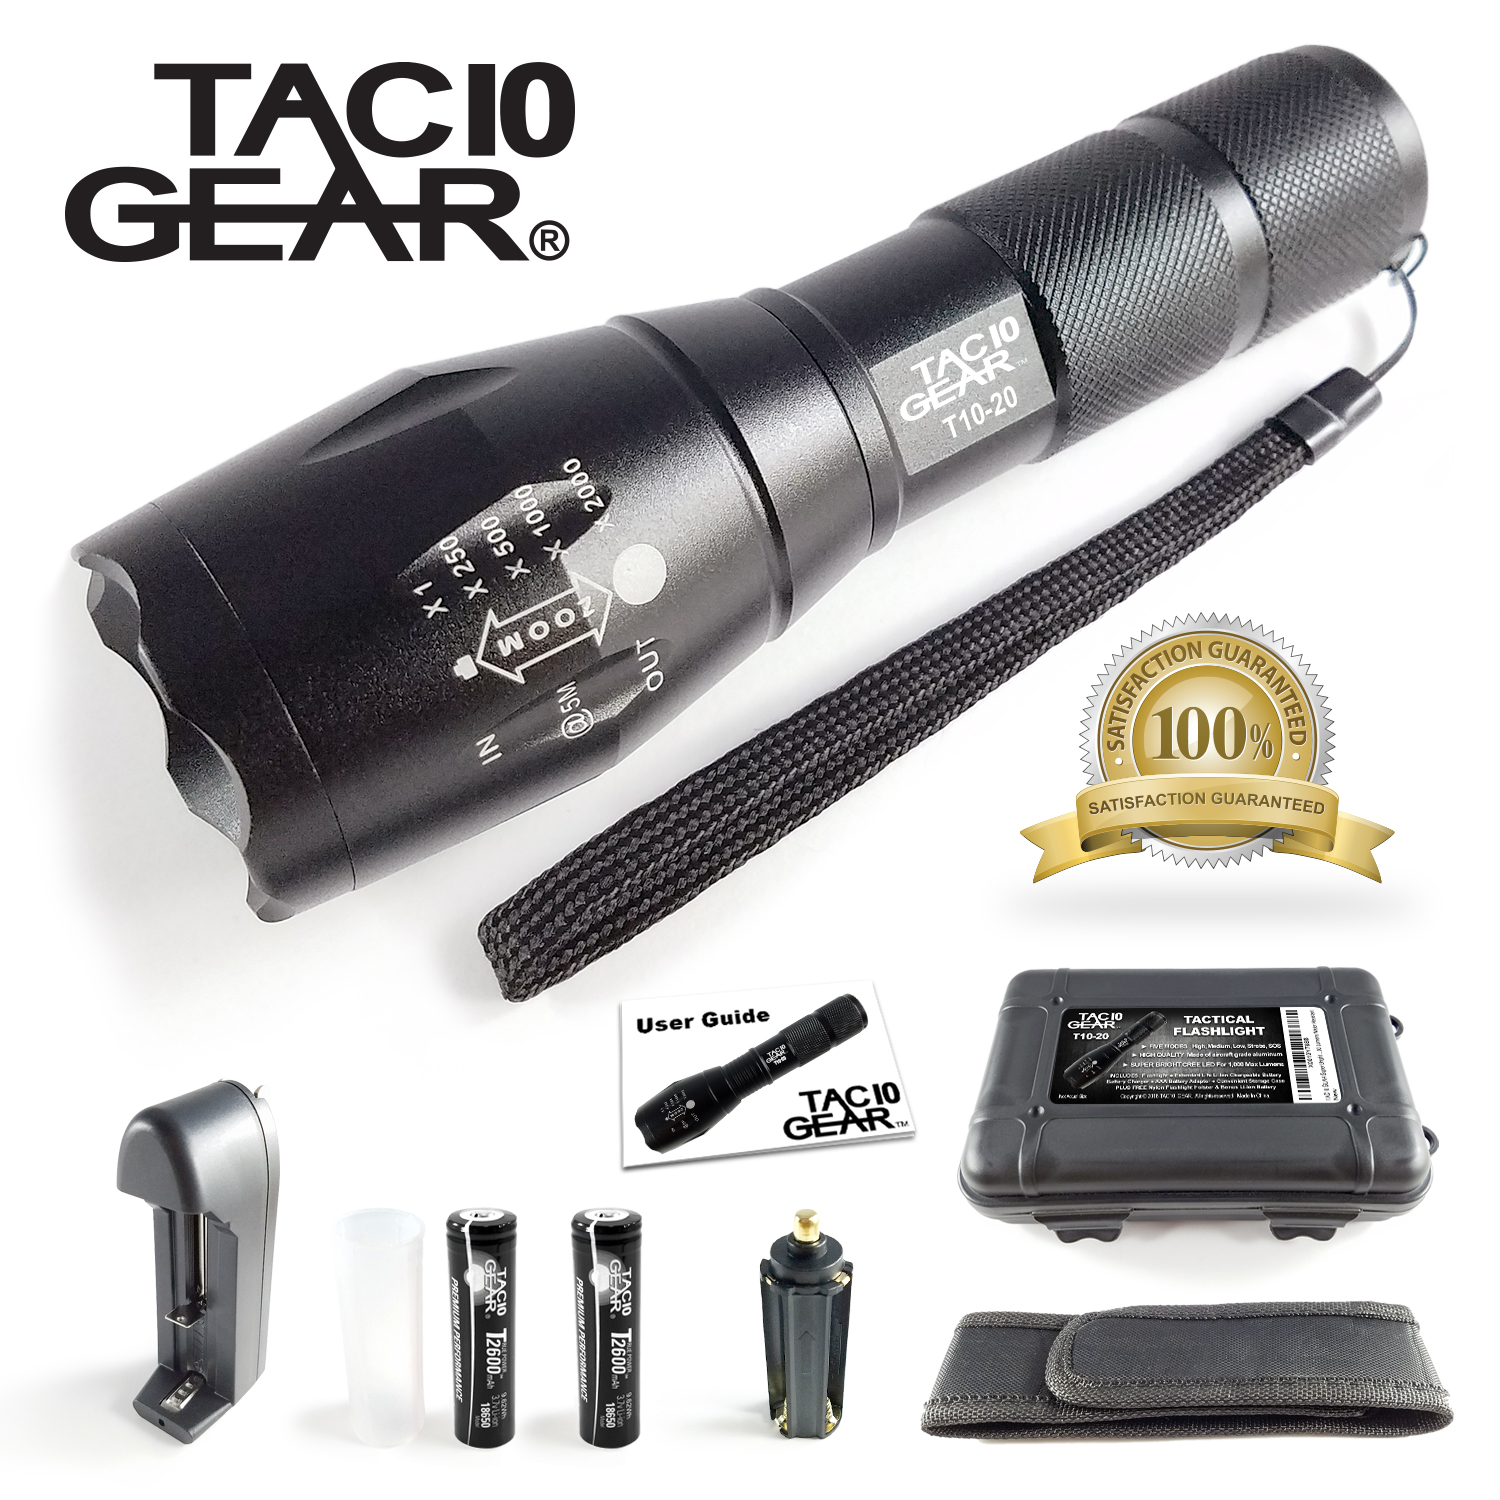 TAC10 GEAR XML-T6 Tactical LED Flashlight 1000 Lumens + Adjustable Zoom Focus + 5 User Modes + Water Resistant + 2 Rechargeable Li-Ion Batteries and Charger + Holster and Storage Case